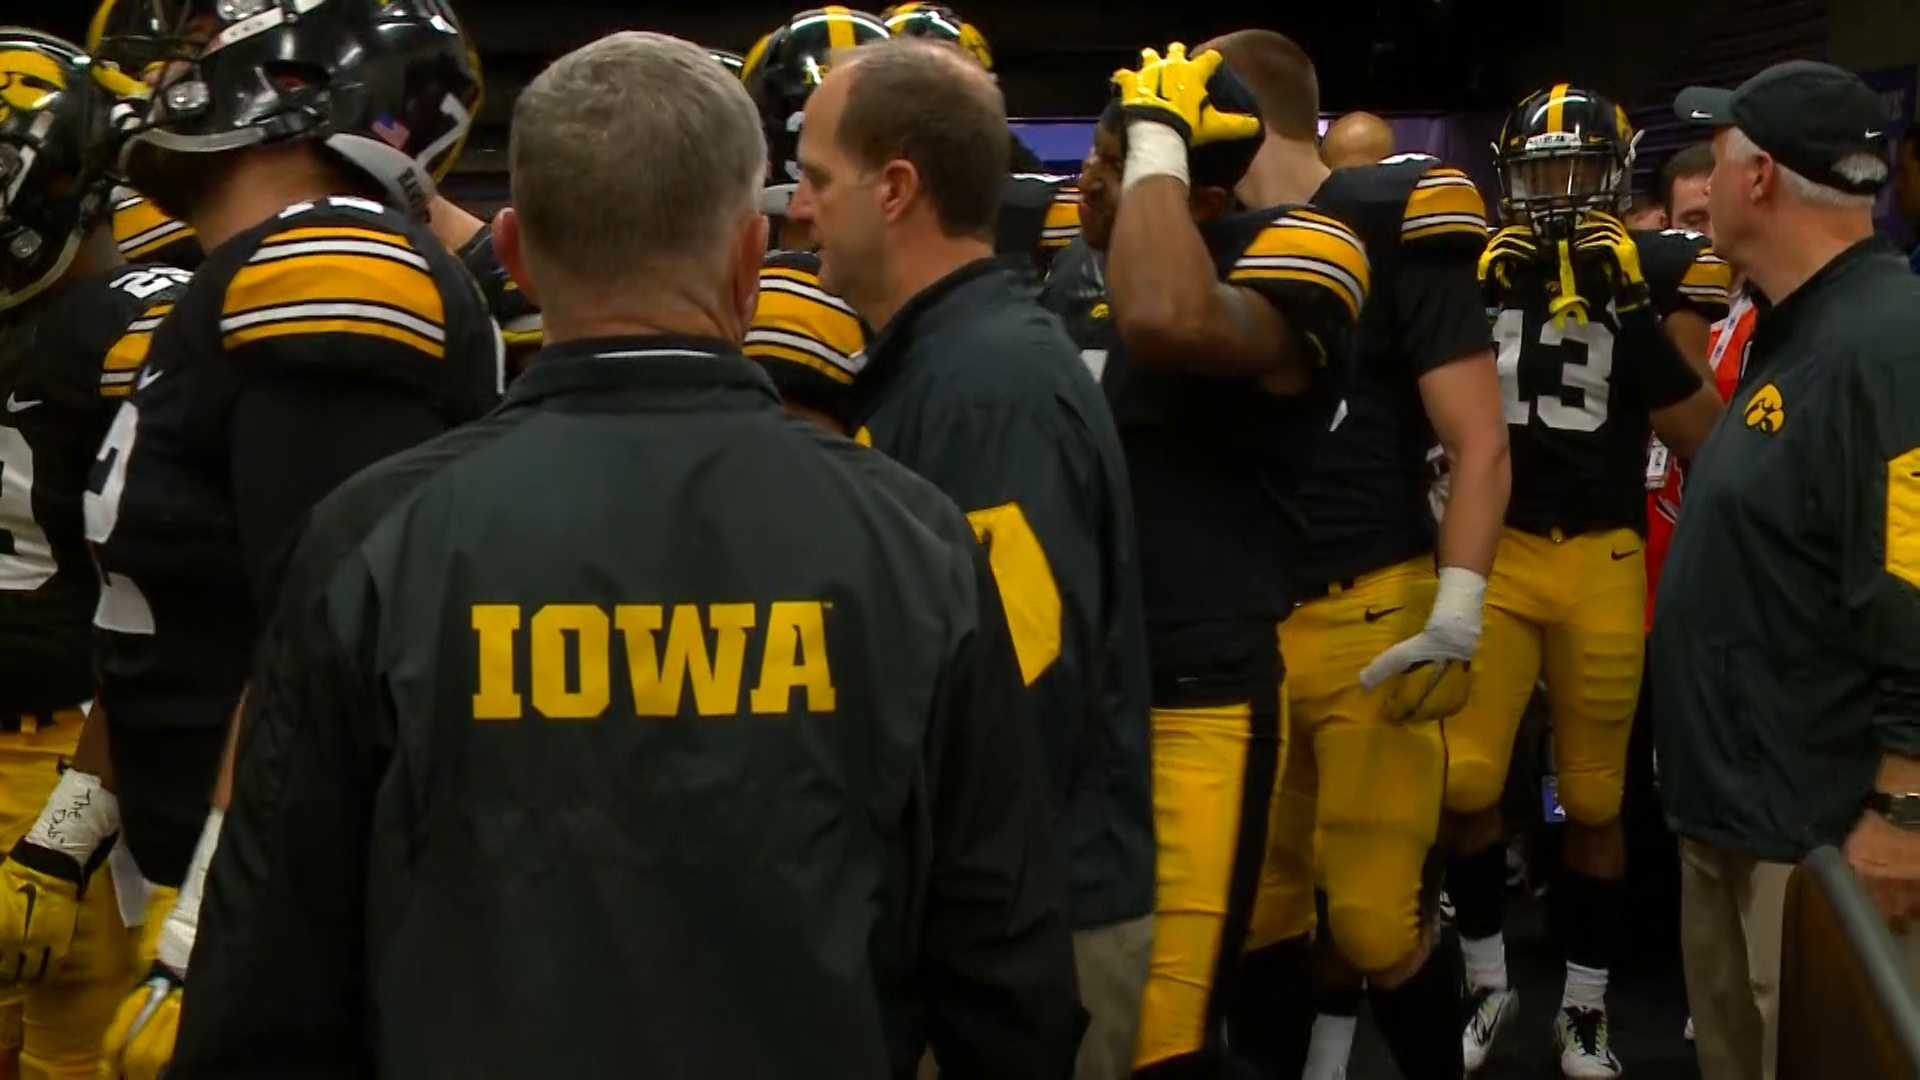 The Hawkeyes lost a heartbreaker, but have high hopes for their bowl game.